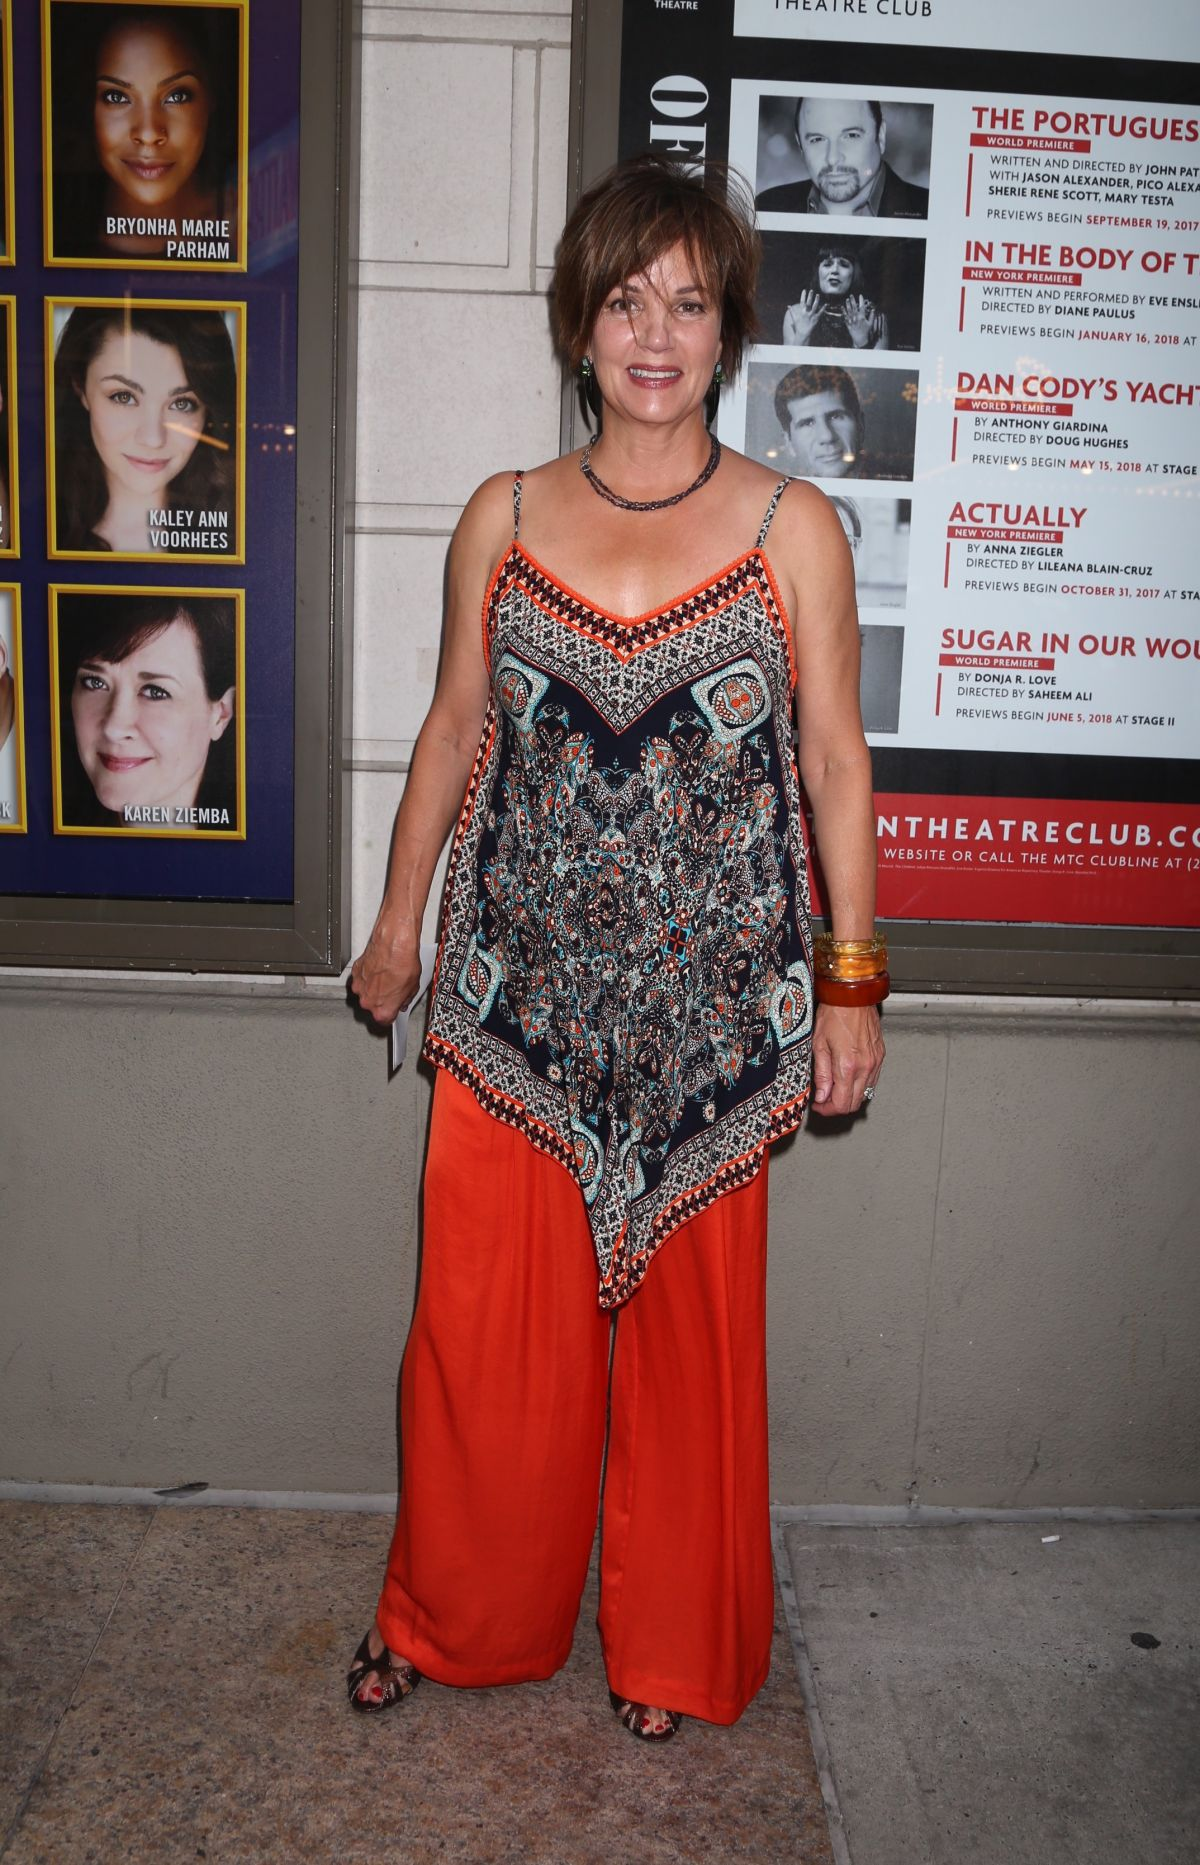 Margaret colin prince of broadway premiere in new york